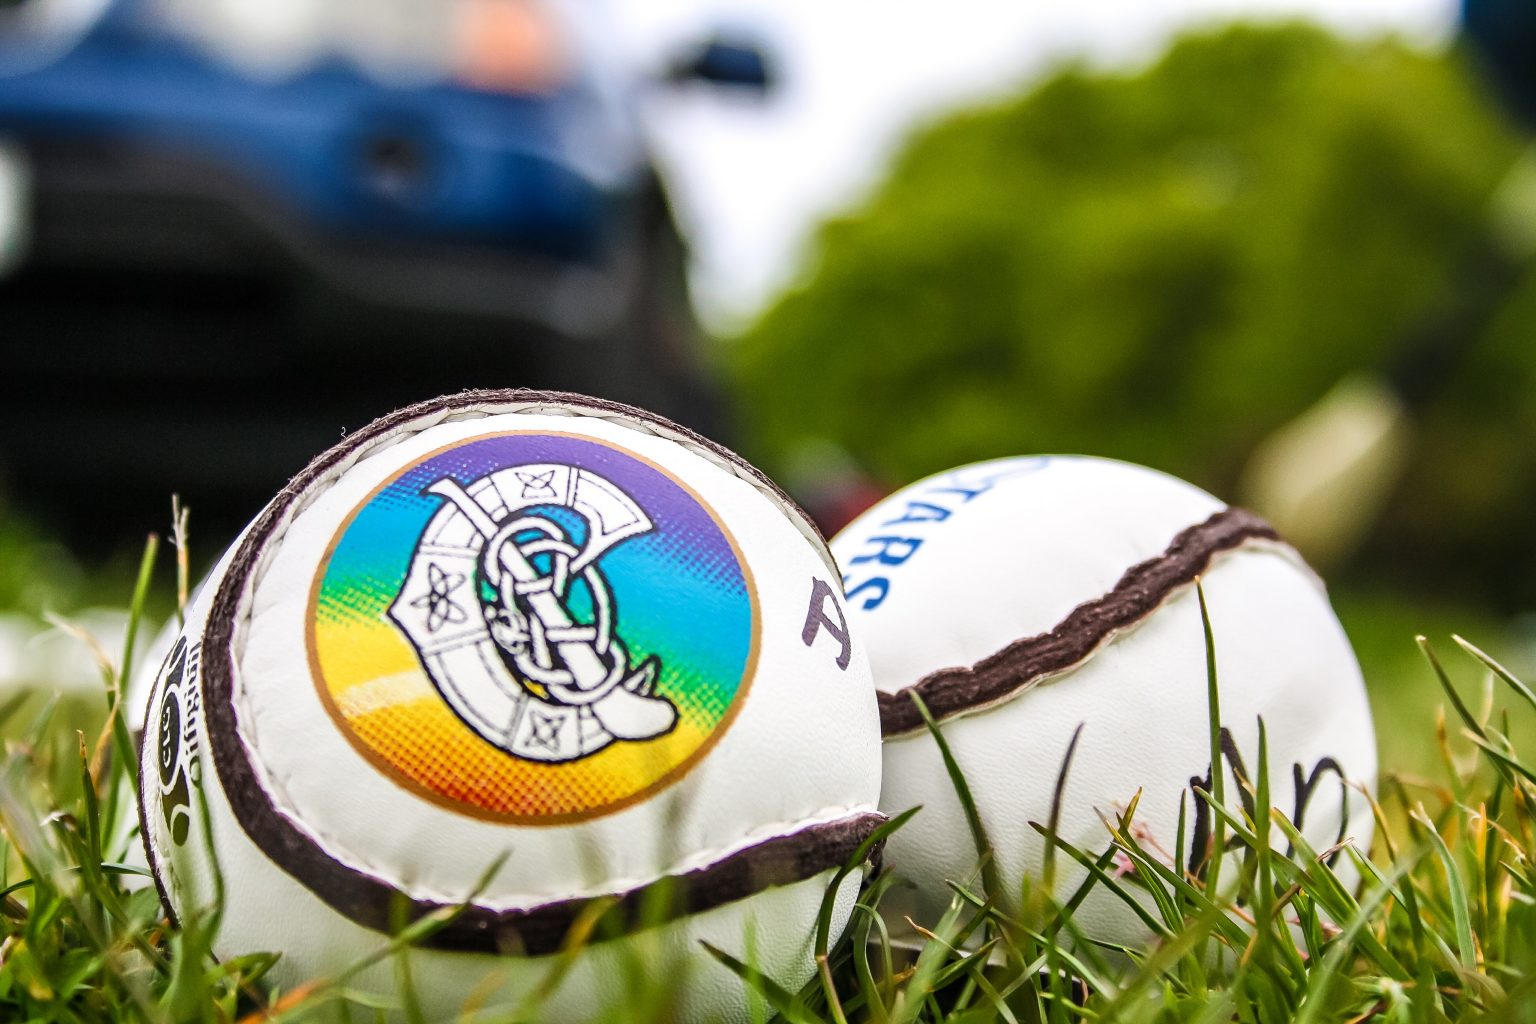 Two white sliotars on a grass pitch at the Dublin Camogie U14 Development Squad Training